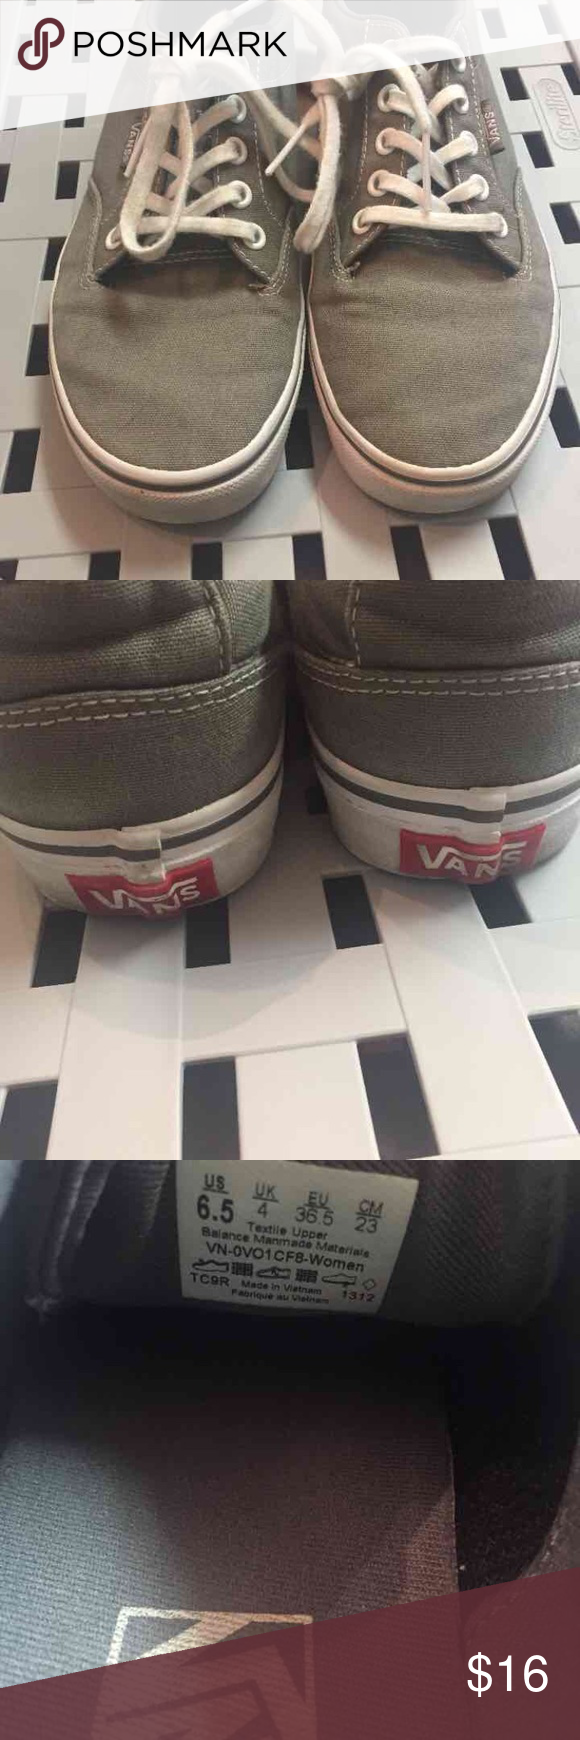 Grey Vans Selling grey vans size 6.5, they were only used twice, pretty good condition. Vans Shoes Sneakers